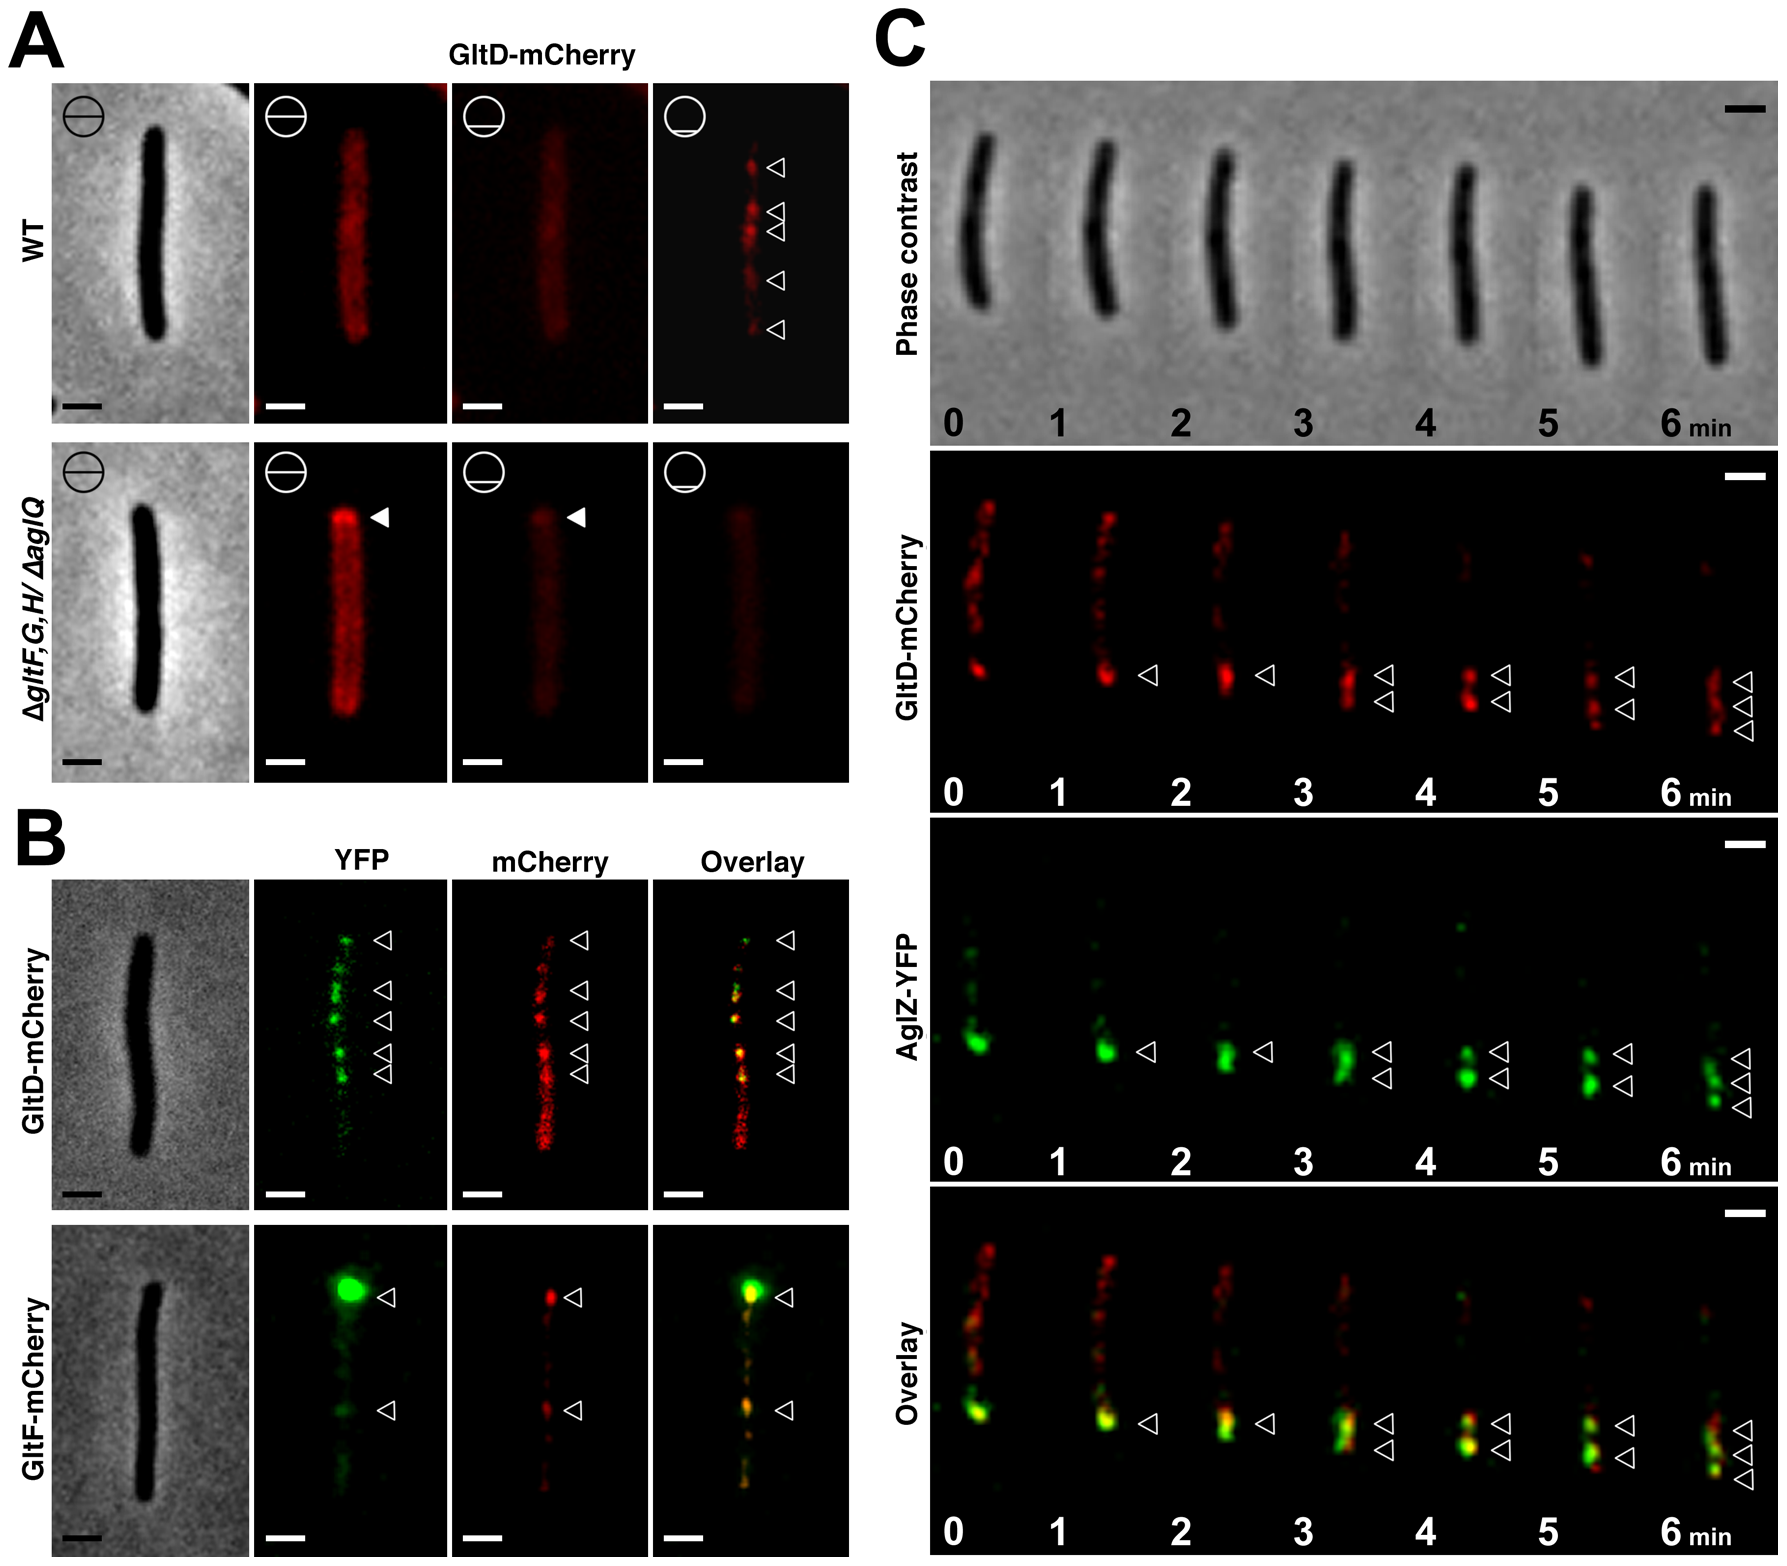 The Glt proteins localize dynamically to the AglZ-YFP clusters in a AglQ-dependent manner.